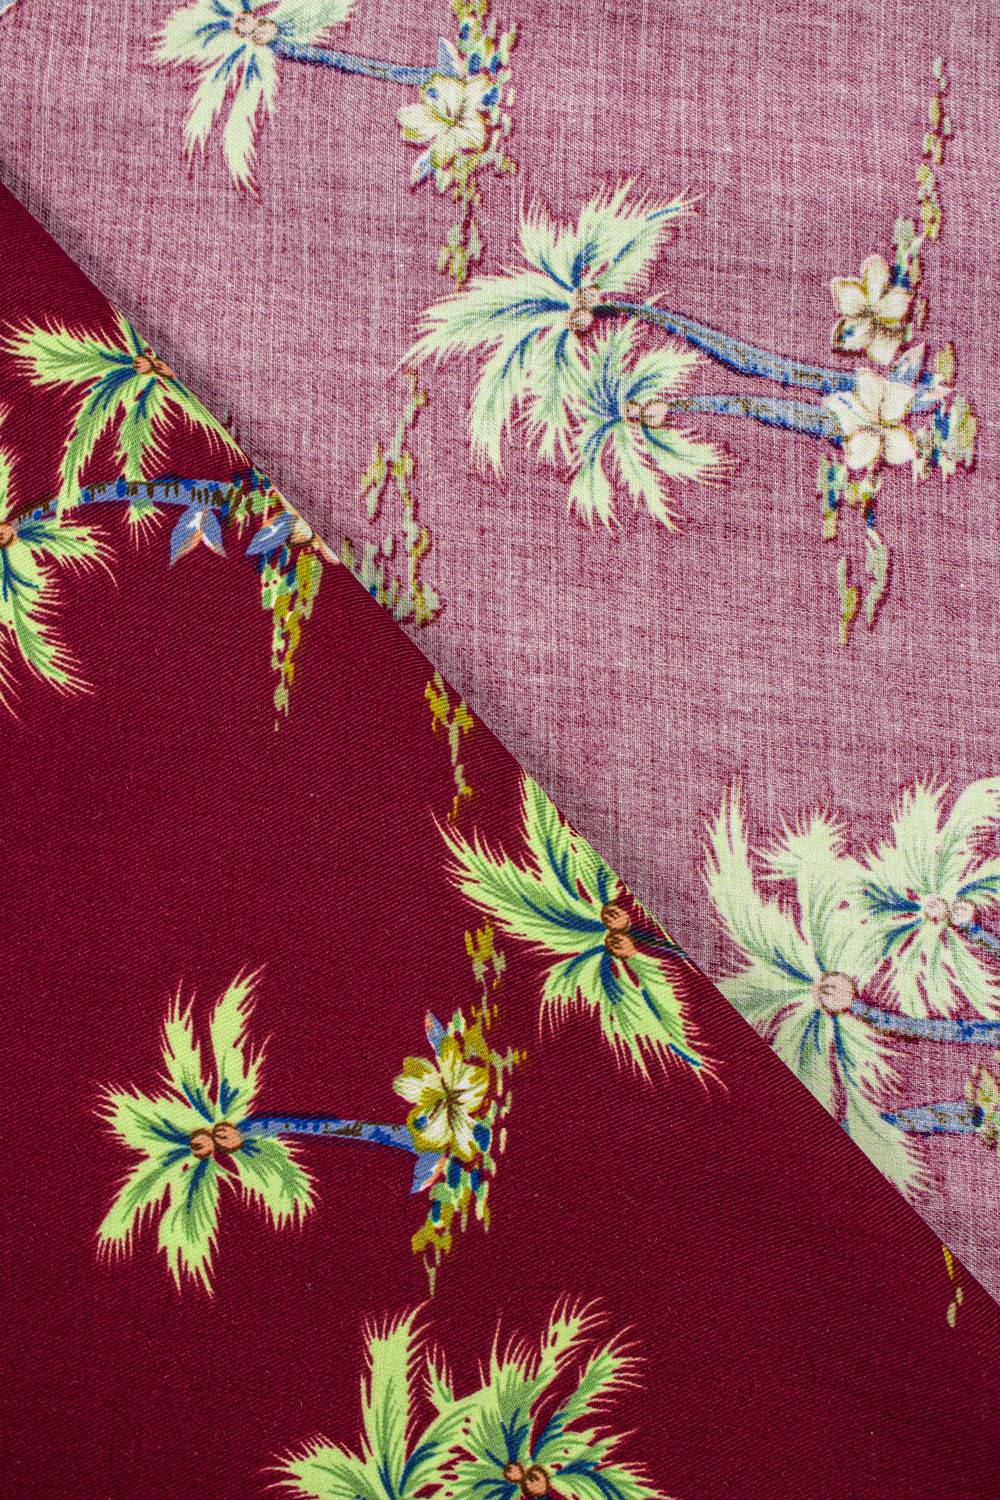 Fabric - Viscose - Burgundy With Leaves - 140 cm - 130 g/m2